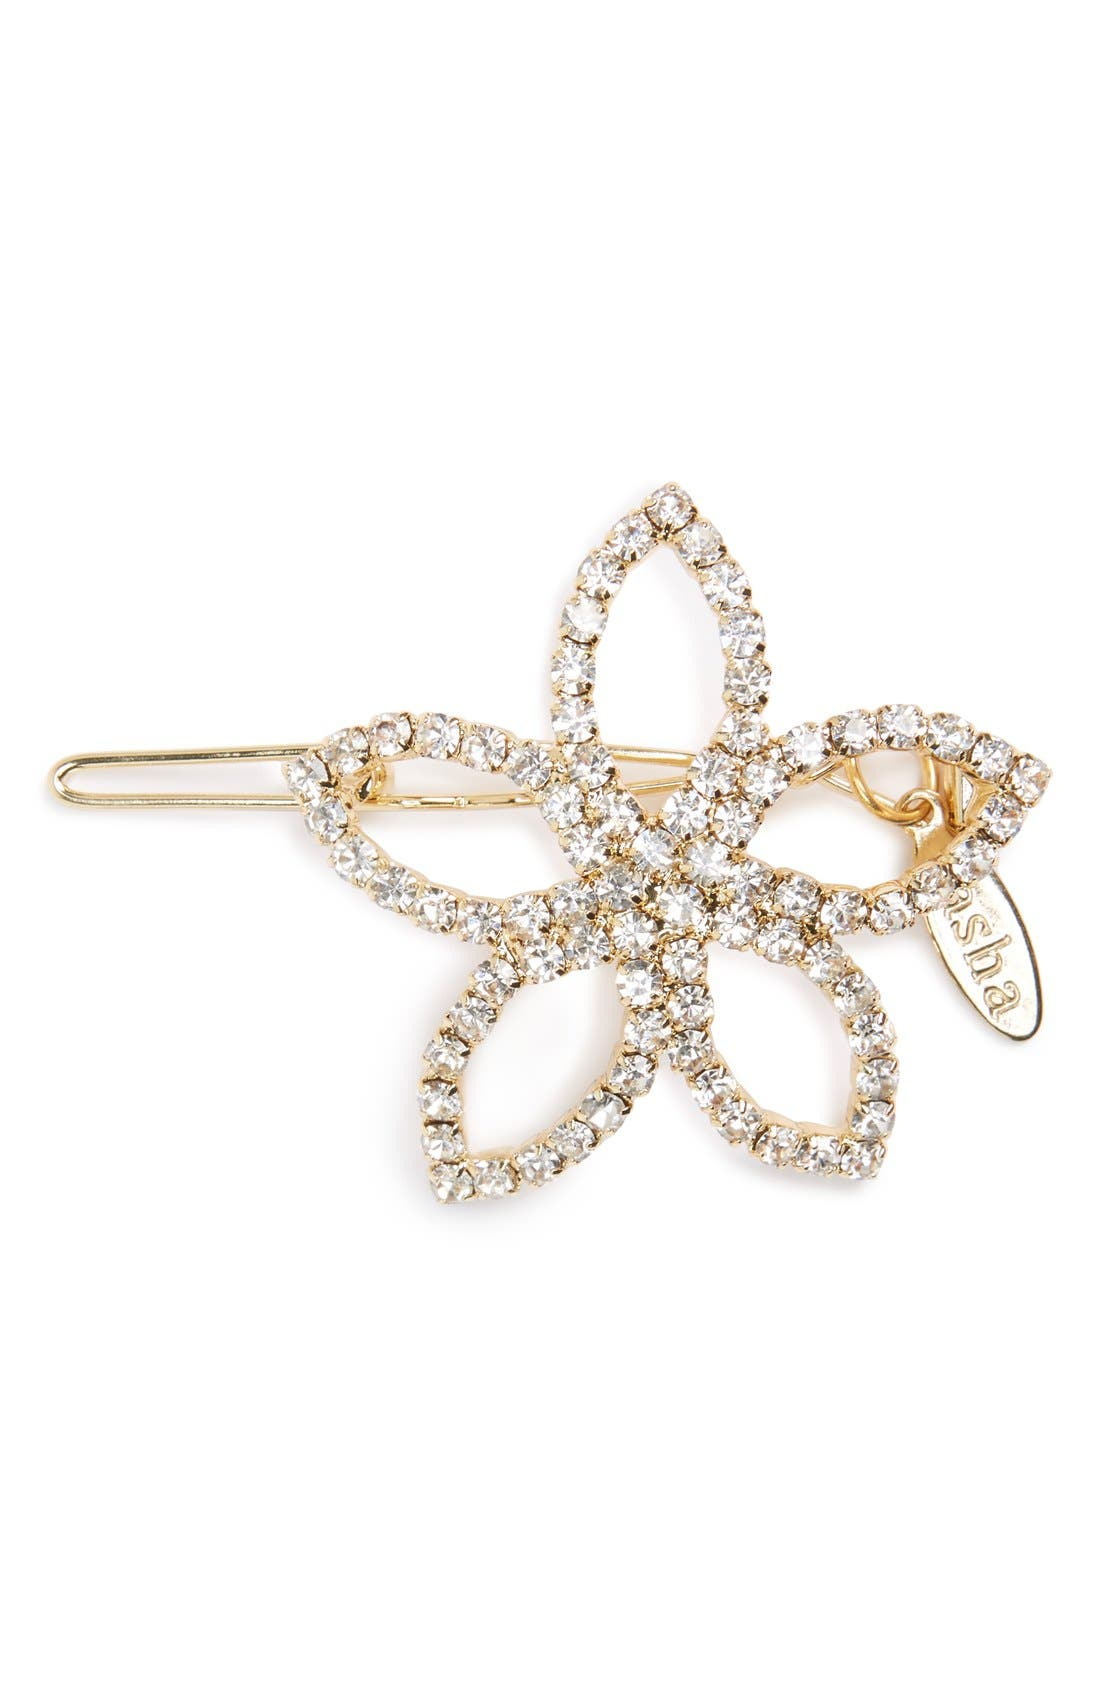 Main Image - Tasha Crystal Flower Barrette